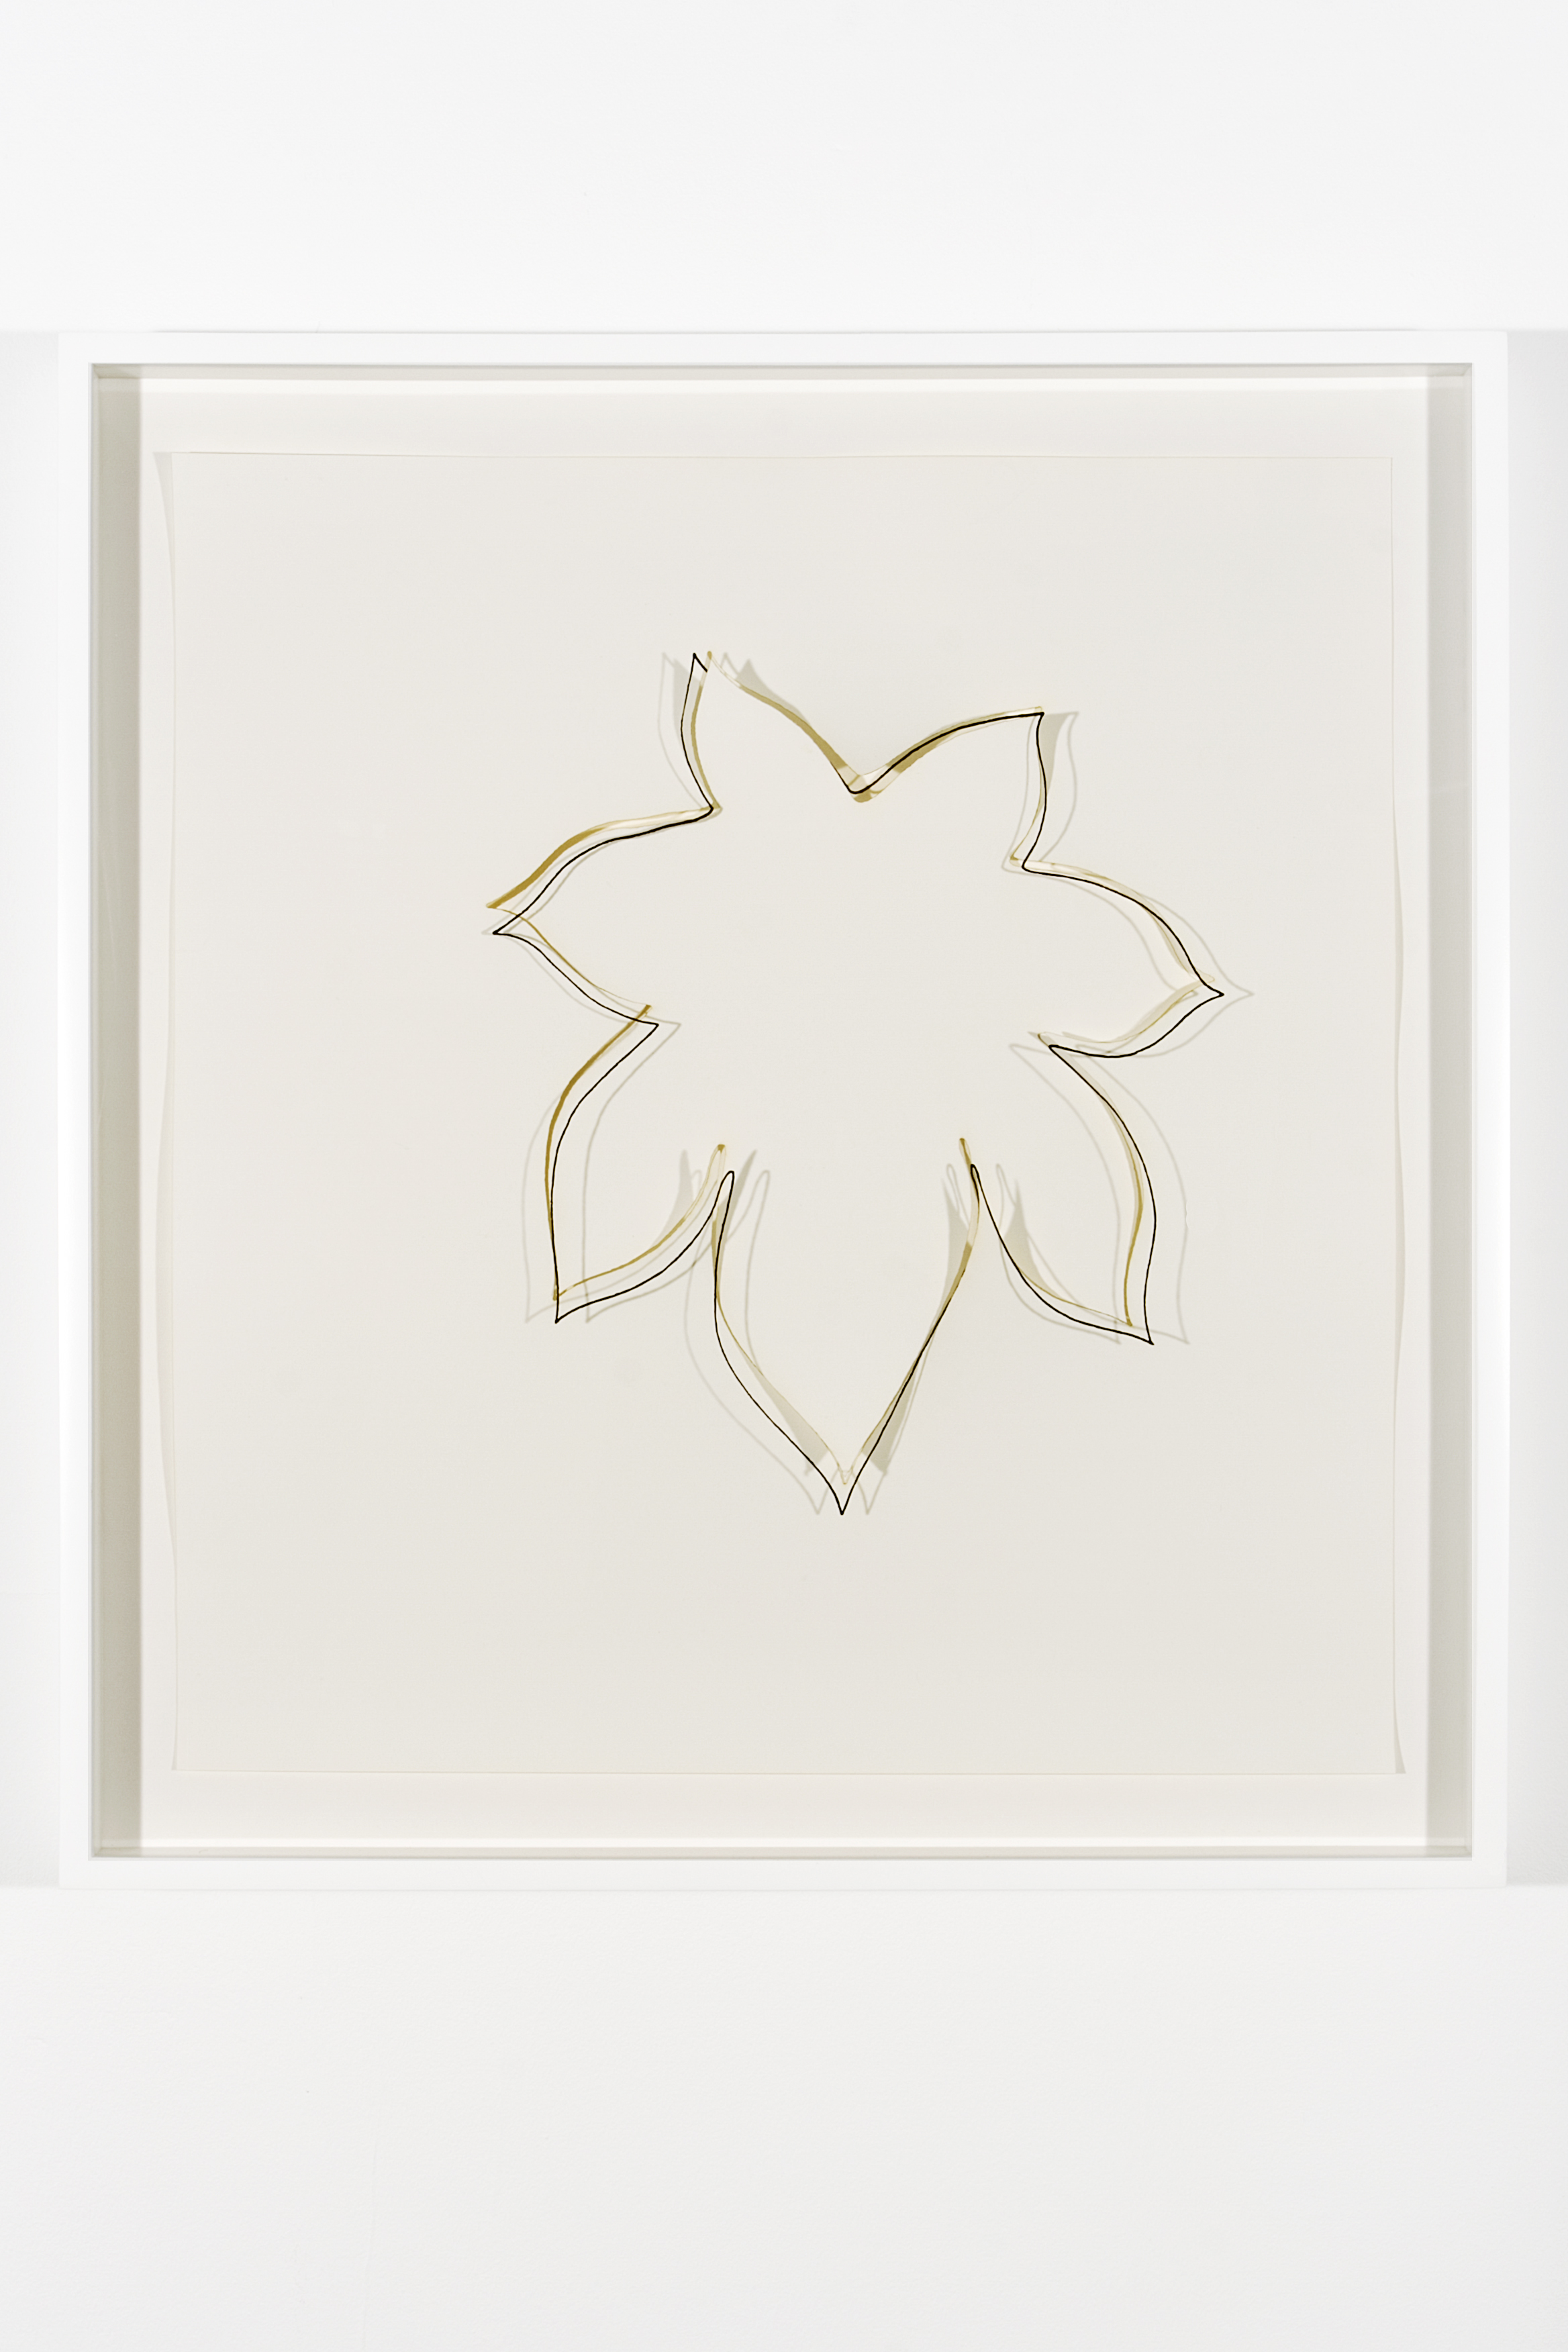 "Collapsed Drawing: ""Castor Bean Leaf"" (Ellsworth Kelly), 2007 laser-cut paper and laser-cut archival digital print mounted on museum board 70,8 x 66 cm - 27 7/8 x 26 inches"